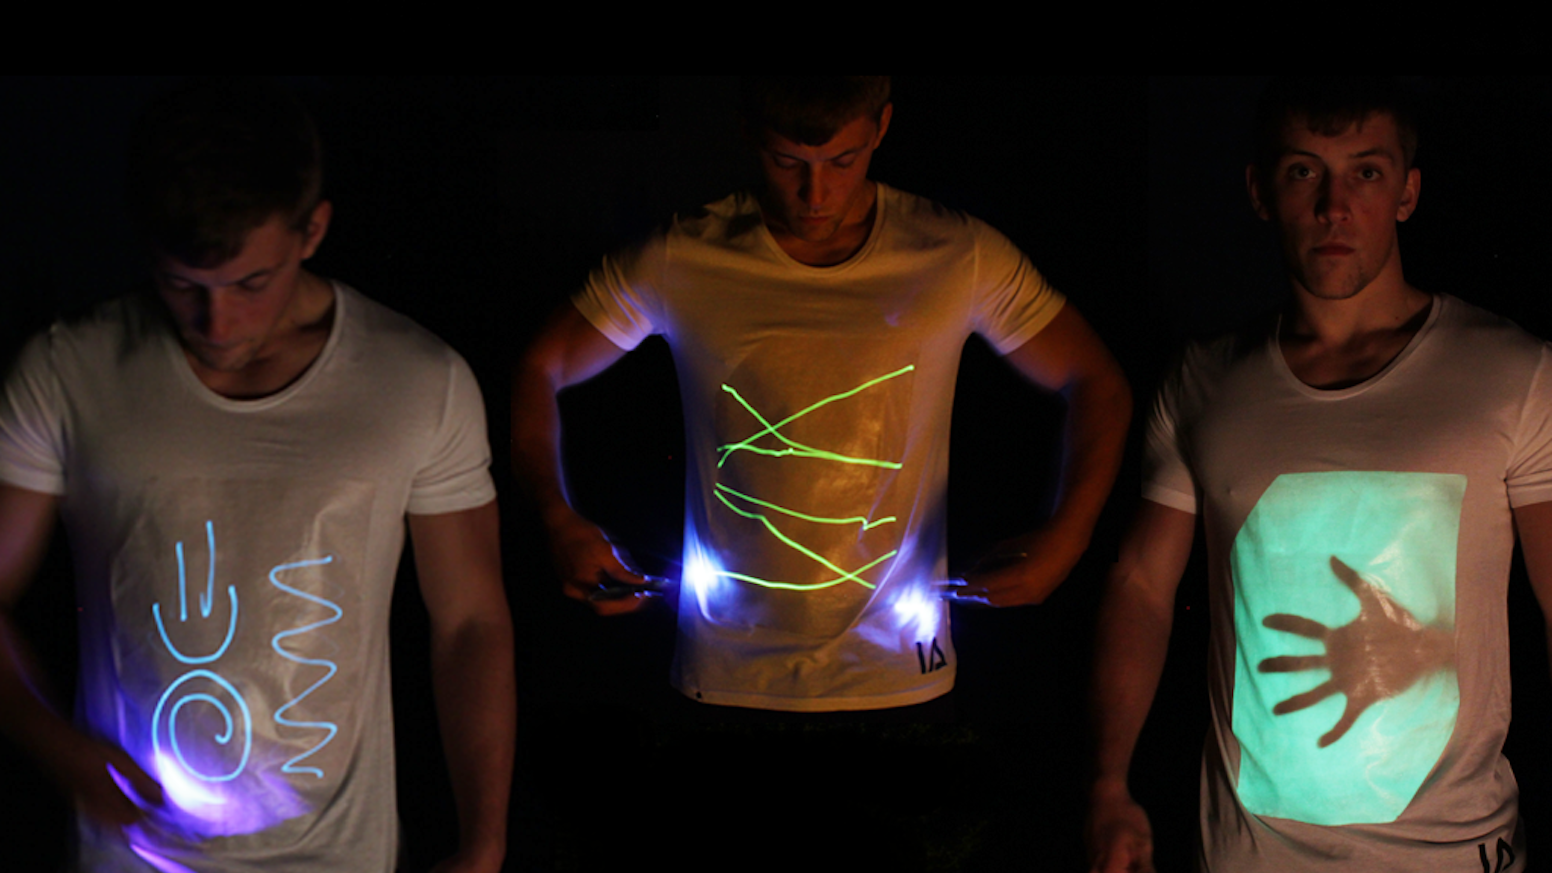 Interactive glow T-shirts with an unlimited drawing canvas. Use any laser pen, mobile phone torch light or UV keyring (included).